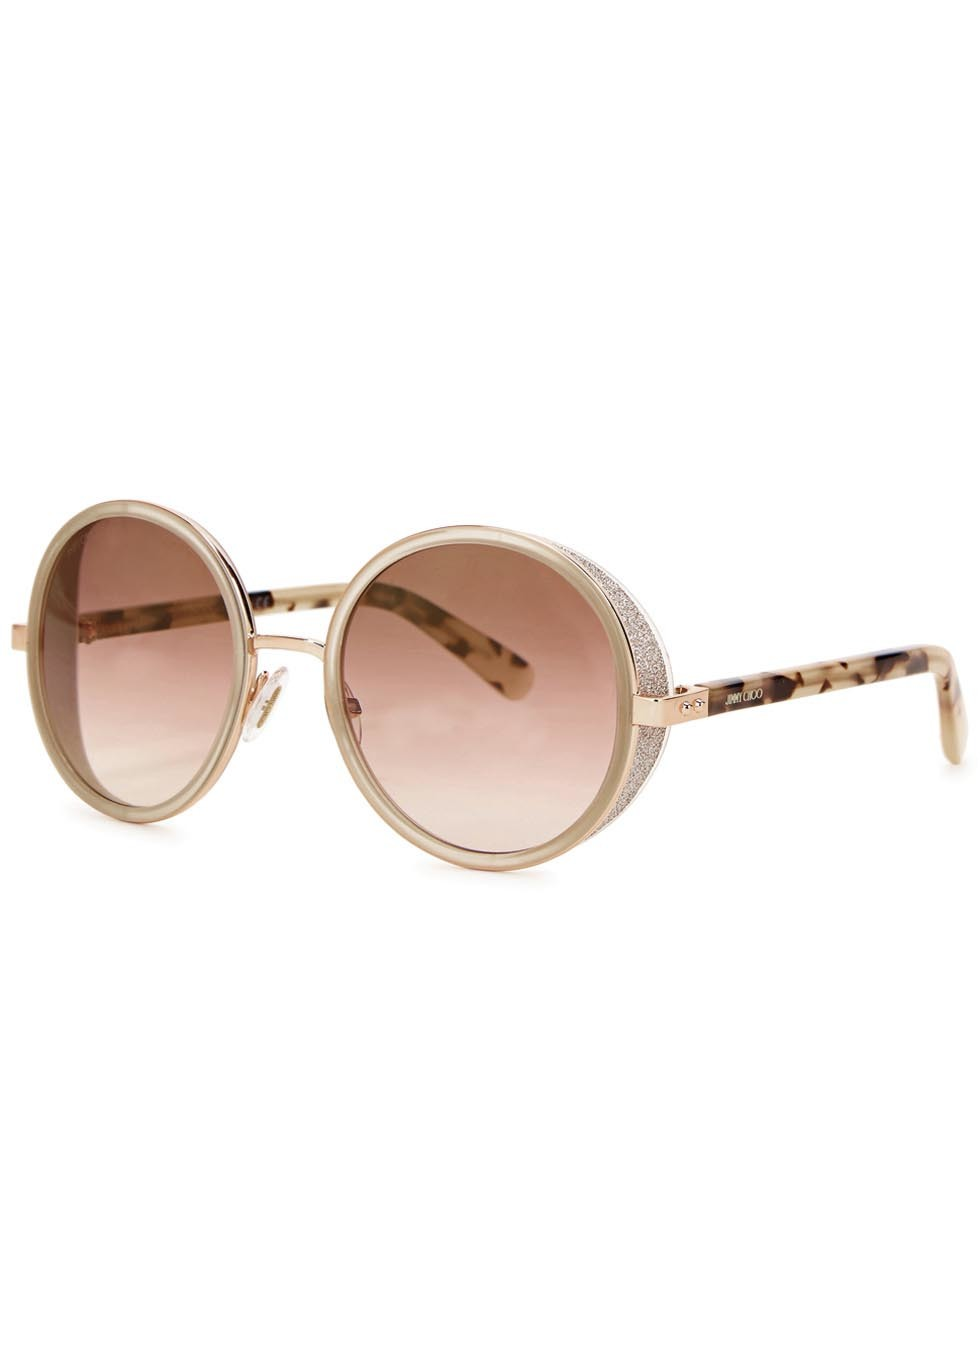 Andie Rose Gold Tone Mirrored Sunglasses - secondary colour: chocolate brown; predominant colour: stone; occasions: casual, holiday; style: round; size: large; material: plastic/rubber; pattern: animal print; finish: plain; season: a/w 2015; wardrobe: highlight